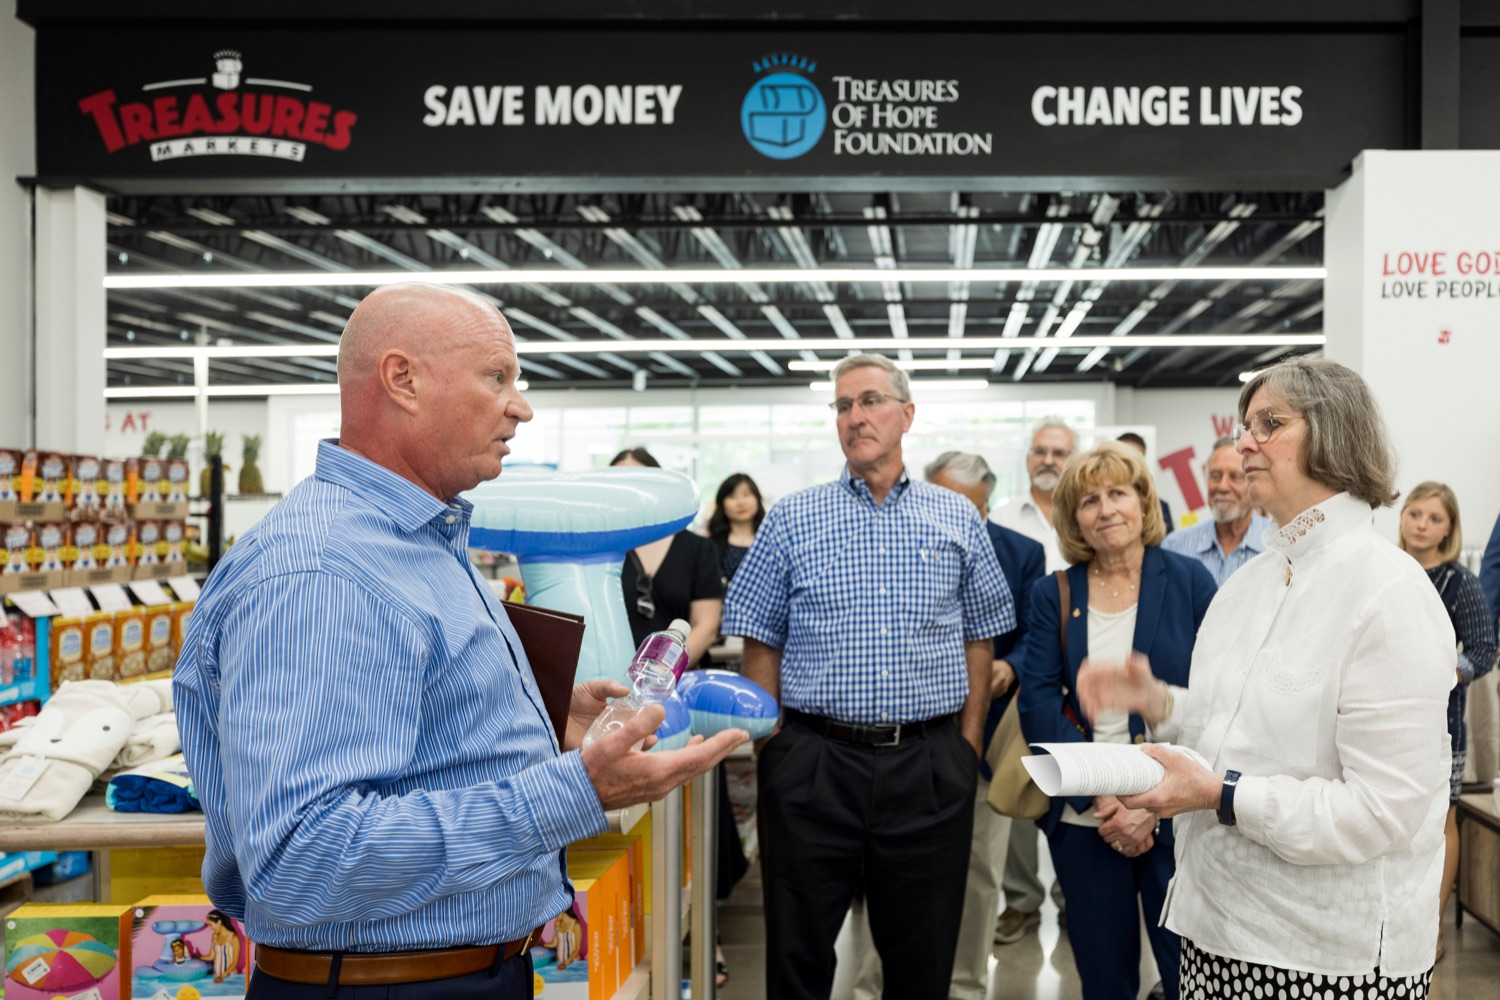 """<a href=""""https://filesource.wostreaming.net/commonwealthofpa/photo/18939_AGRIC_FL_Urban_Farms_NK_005.jpg"""" target=""""_blank"""">⇣Download Photo<br></a>Mike Mitchell, Treasures Markets chairman, left, speaks with PA Dept. of Agriculture Secretary Russell Redding, center, and Pennsylvania First Lady Frances Wolf, inside Treasures Markets in Lancaster on Monday, July 19, 2021. The Treasures of Hope Foundation and Treasures Markets were formed in February 2018 to bring back groceries to Lancaster City. Treasures of Hope is a 501C3 and Treasures Markets is an LLC social enterprise under Treasures of Hope. All profits from Treasures Markets go to Treasures of Hope which distributes them to other 501C3 organizations that feed the hungry and homeless."""